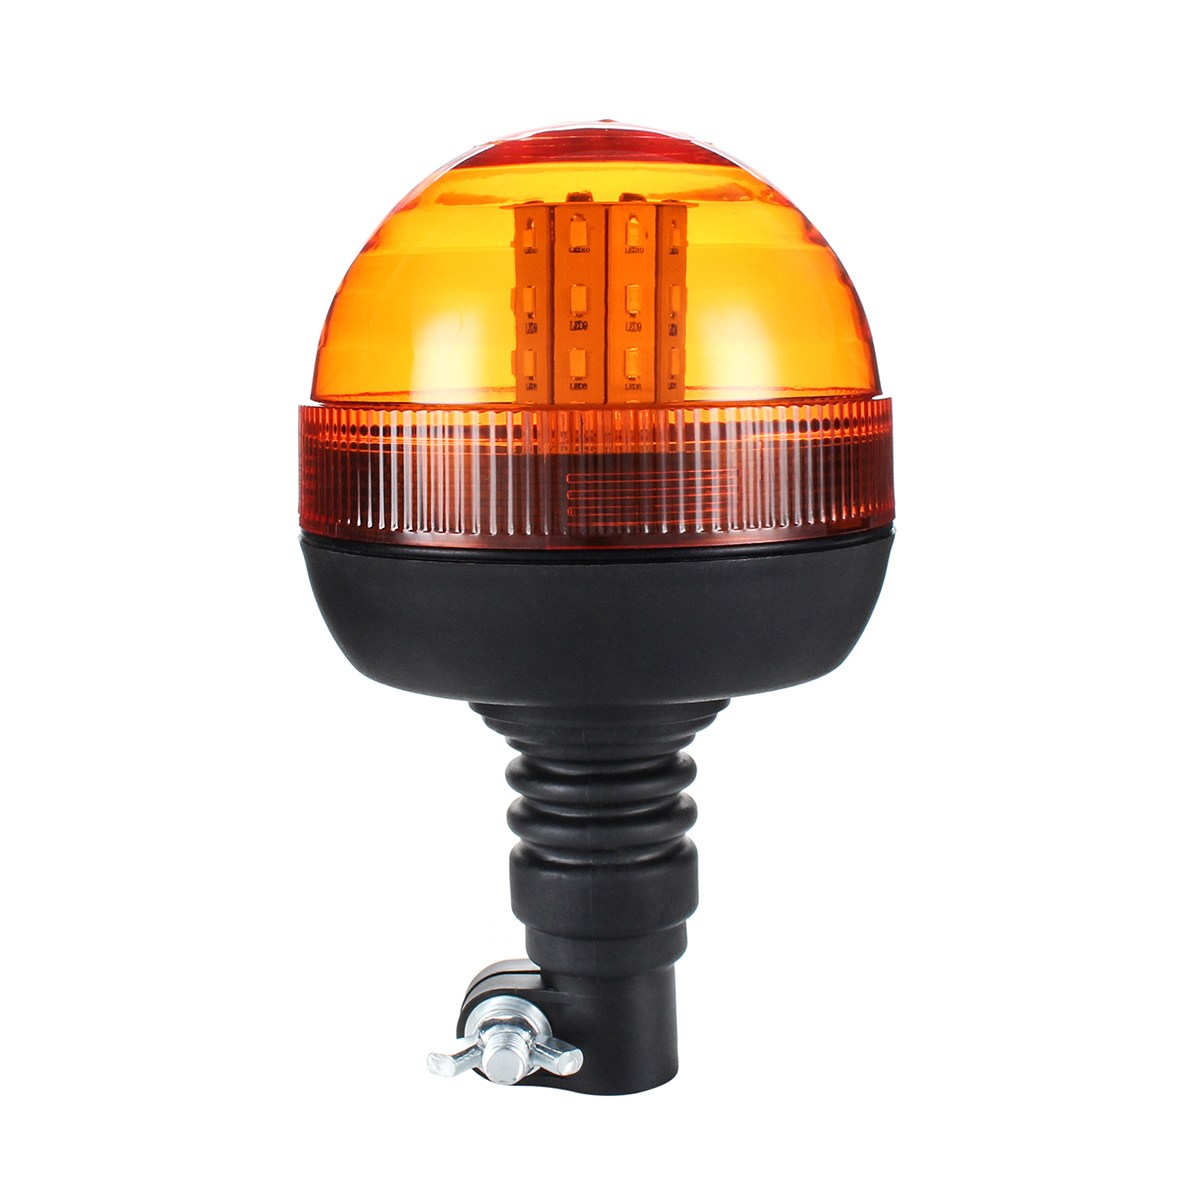 NEW LED Rotating Flashing Amber Beacon Flexible Tractor Warning Light 12V-24V Roadway Safety